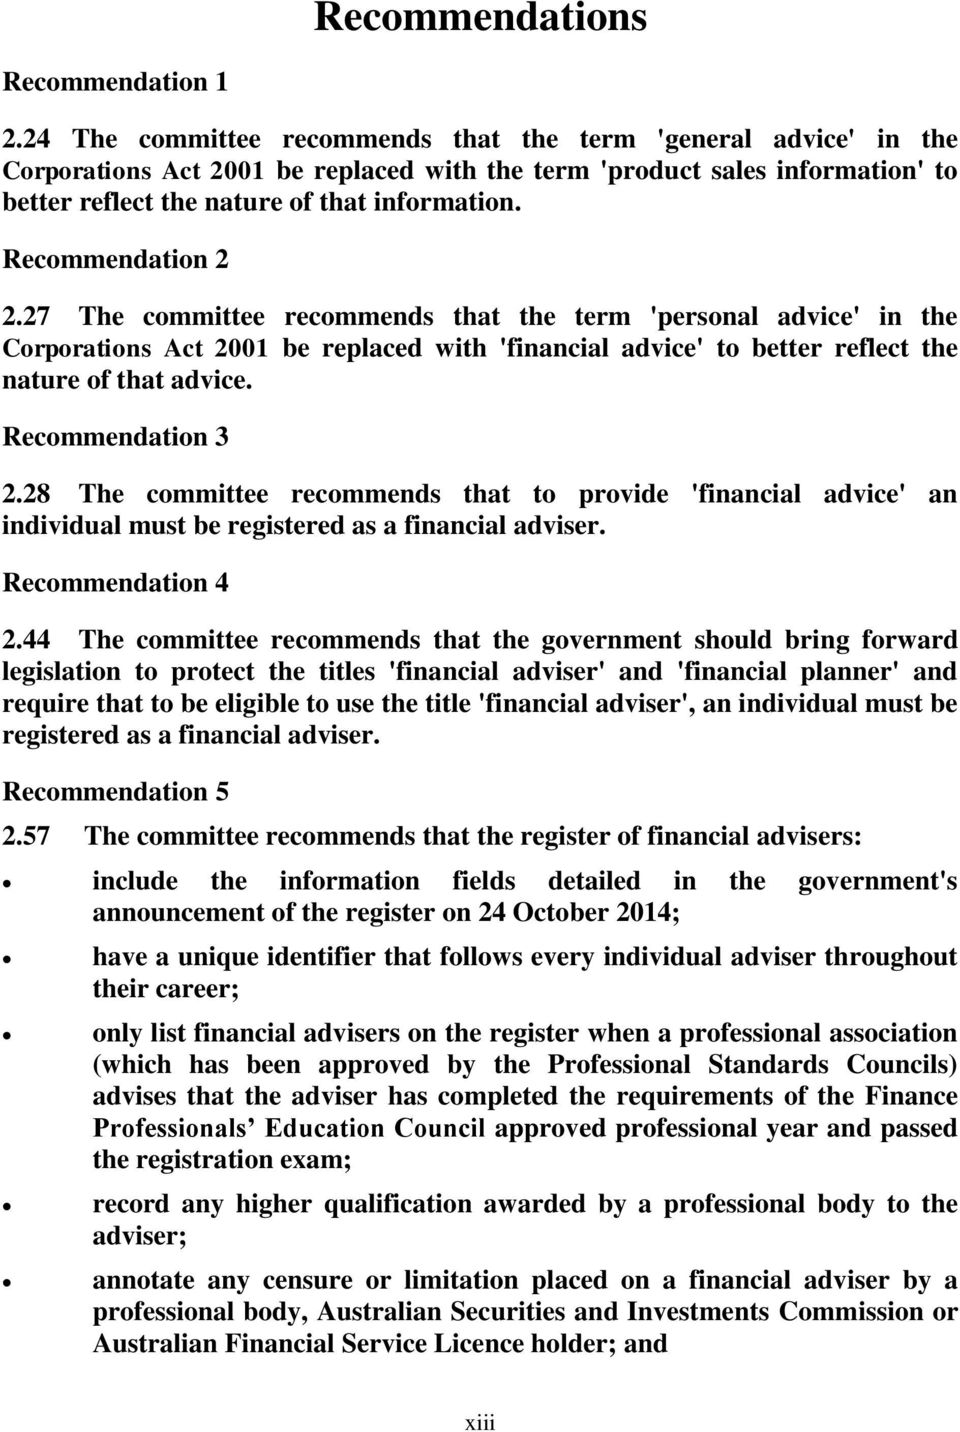 Recommendation 2 2.27 The committee recommends that the term 'personal advice' in the Corporations Act 2001 be replaced with 'financial advice' to better reflect the nature of that advice.